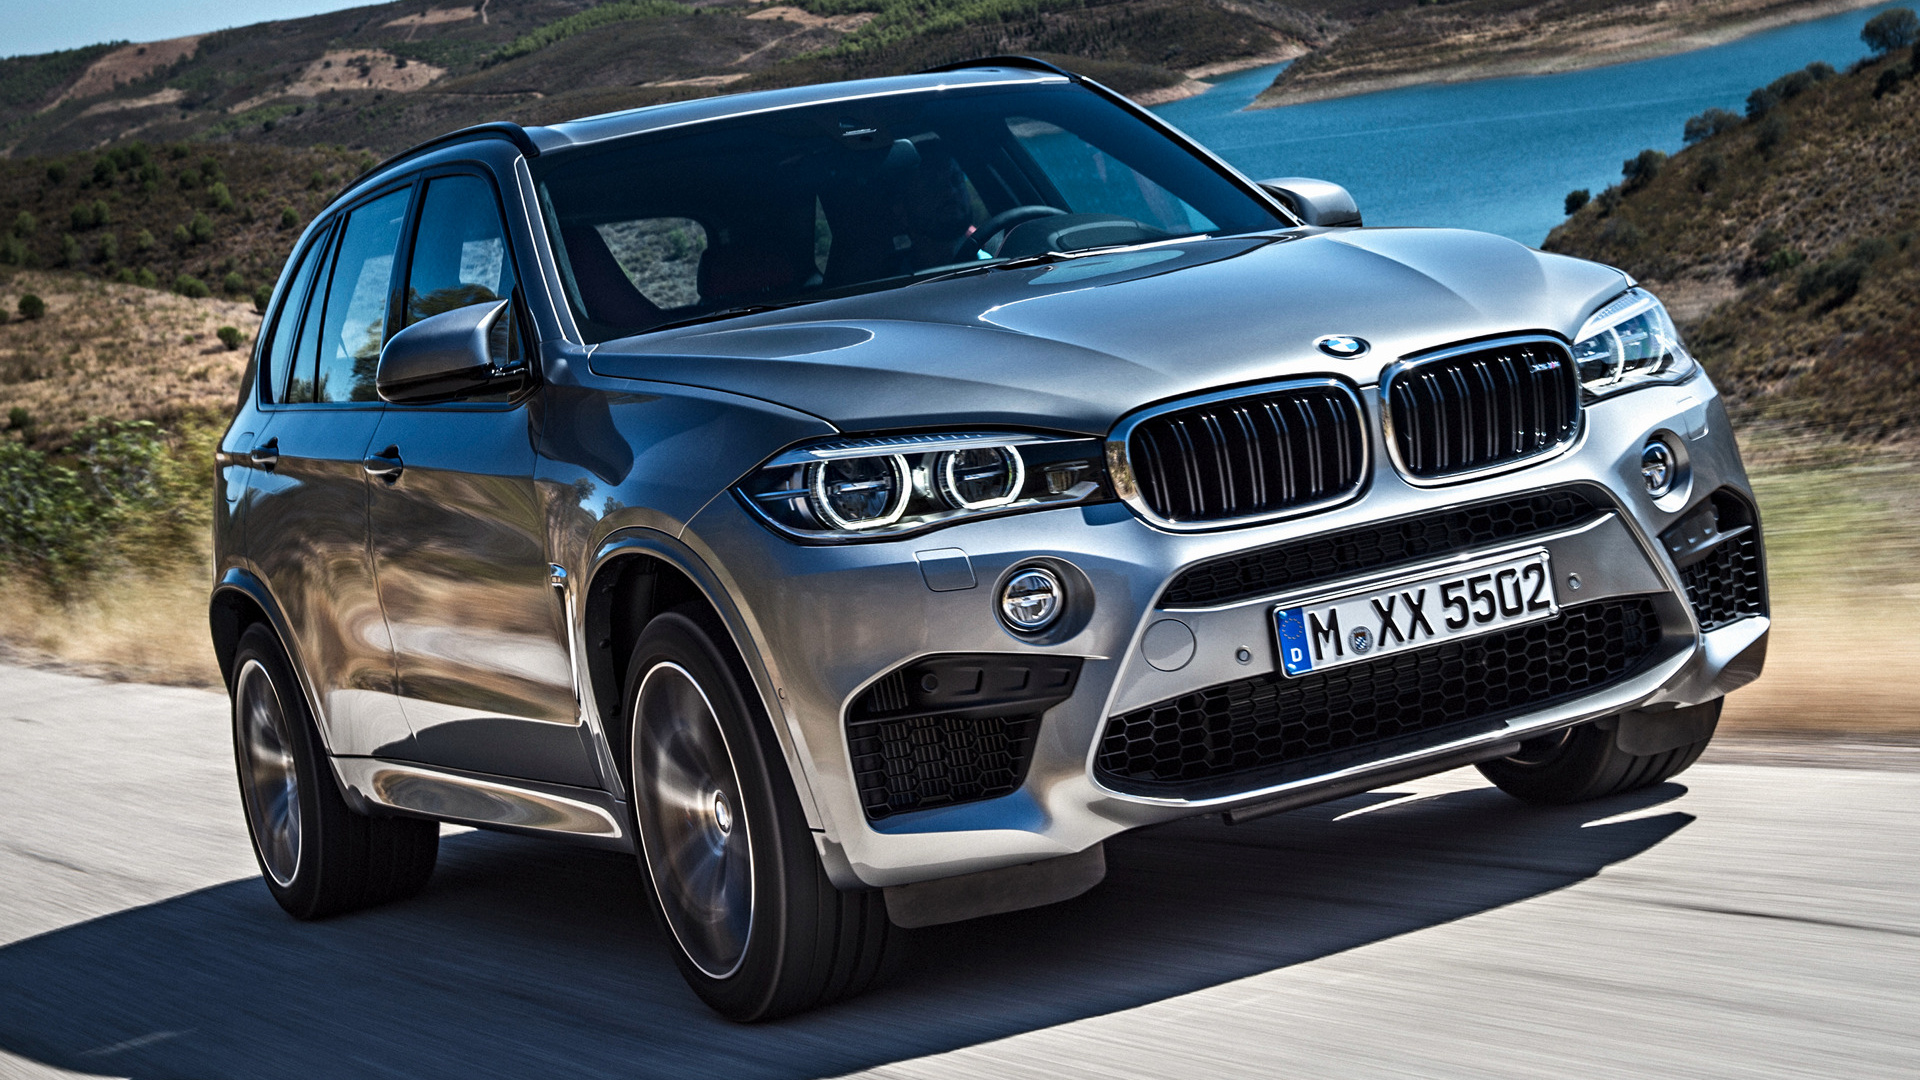 Group Of Bmw X5 M Hd Wallpaper 1080p